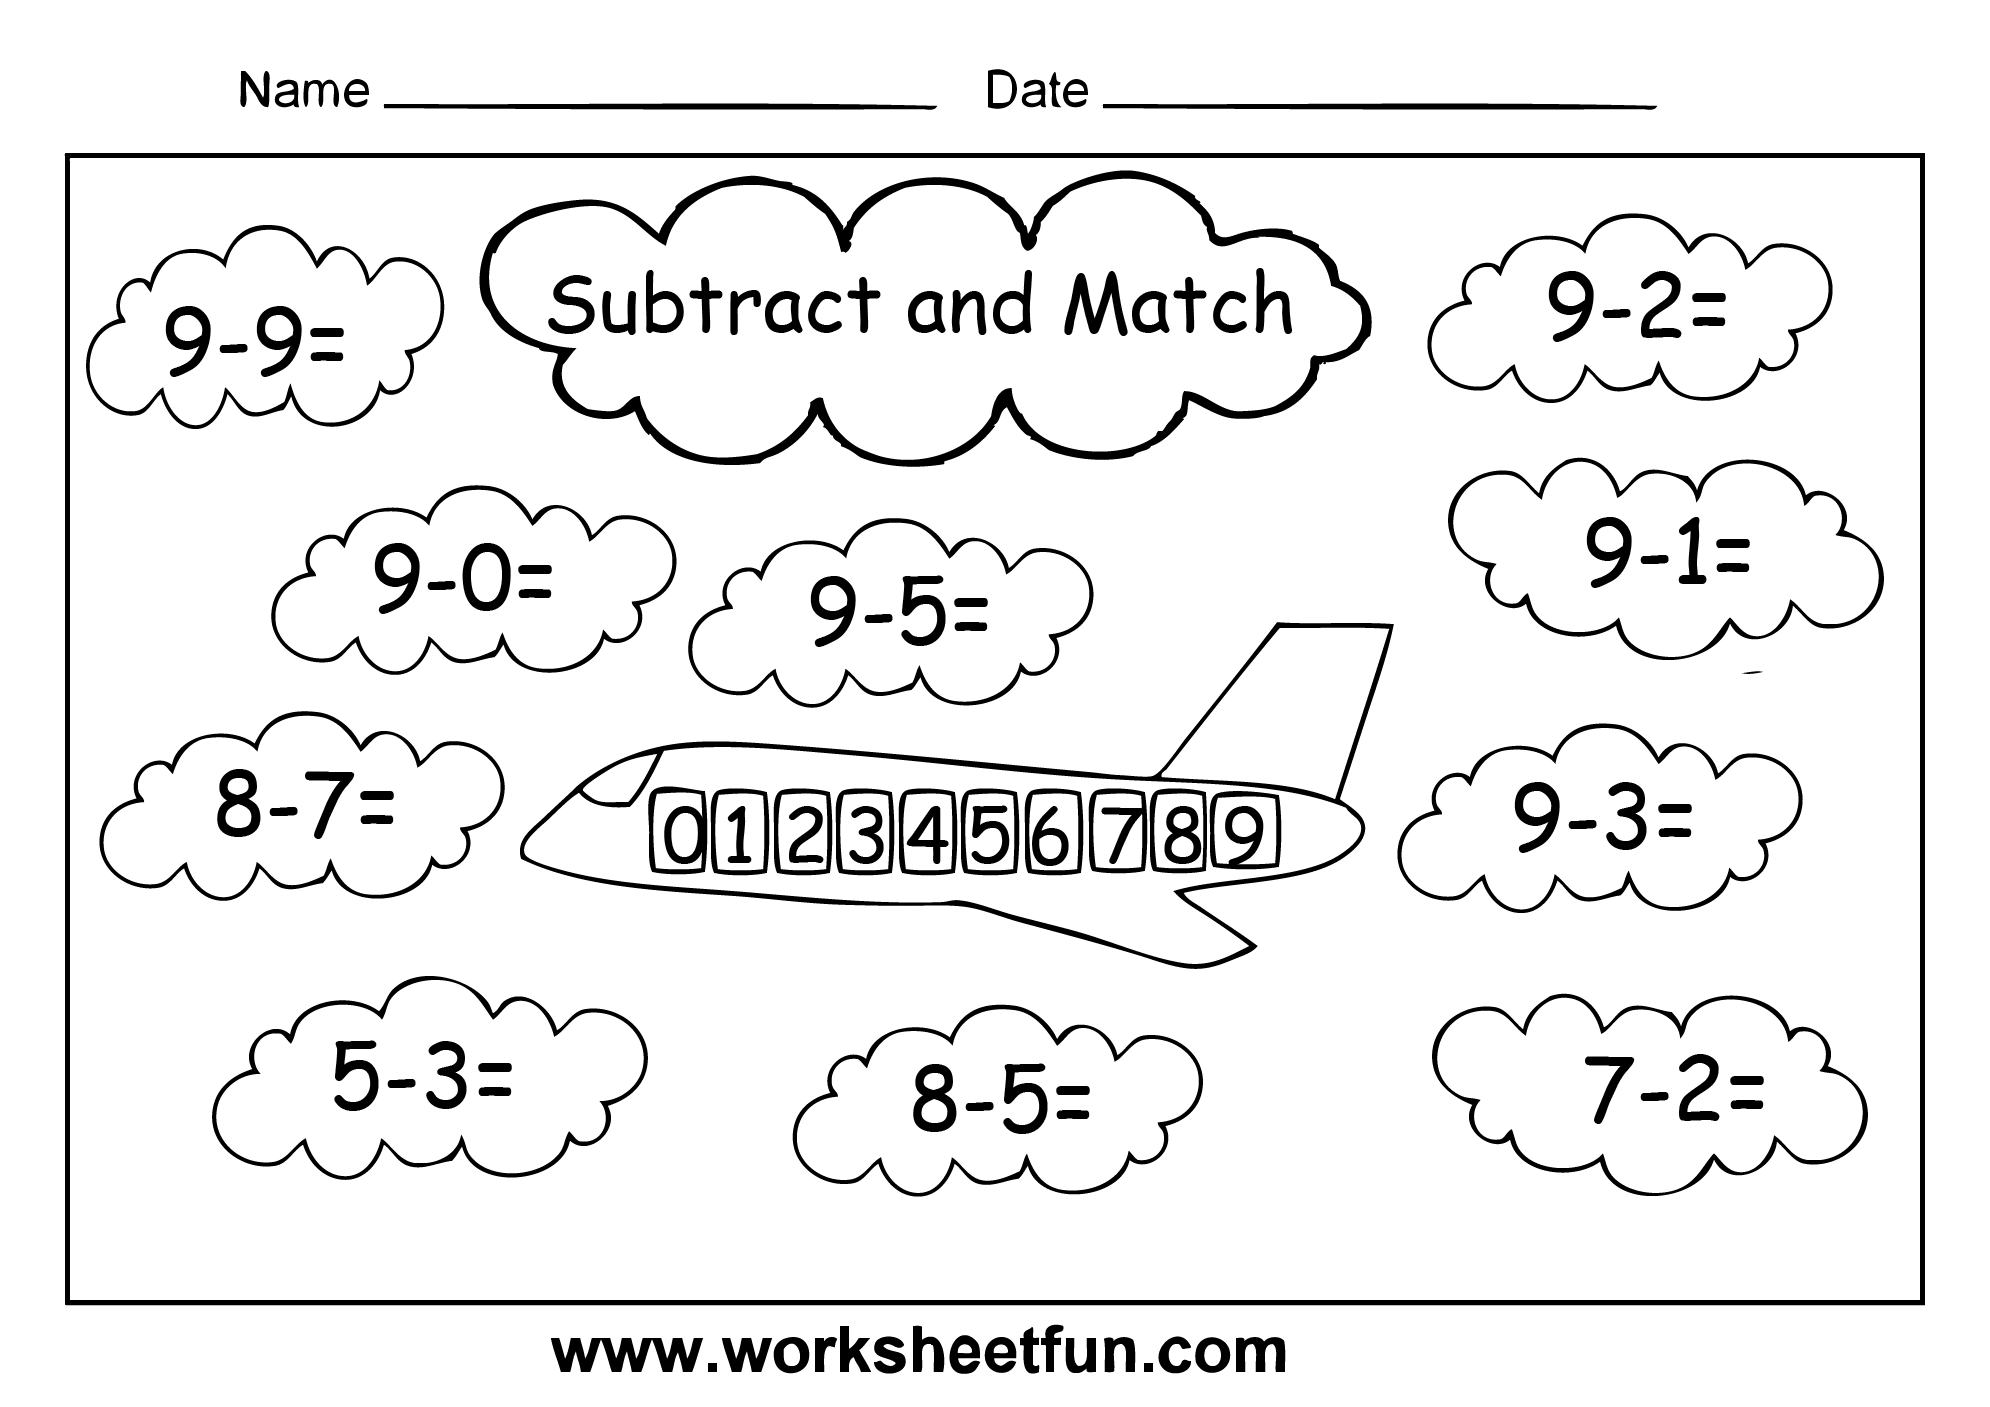 math worksheet : 1000 images about worksheets on pinterest  first grade math  : Subtraction Worksheet For 1st Grade